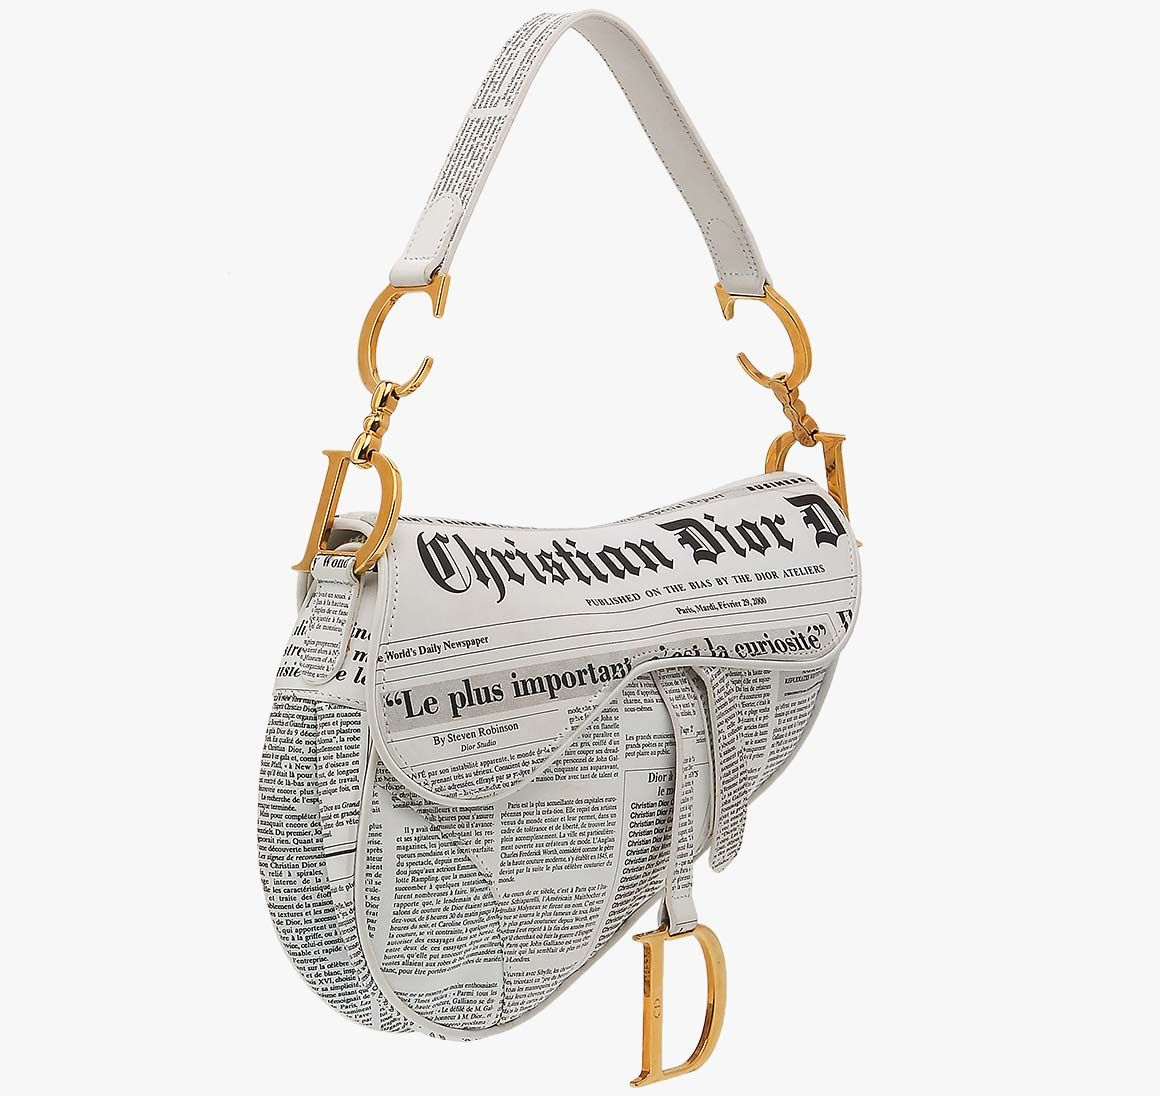 6f8950aa3d Inseller - Women Handbags Christian Dior Newspaper Leather Ghw Saddle Bag